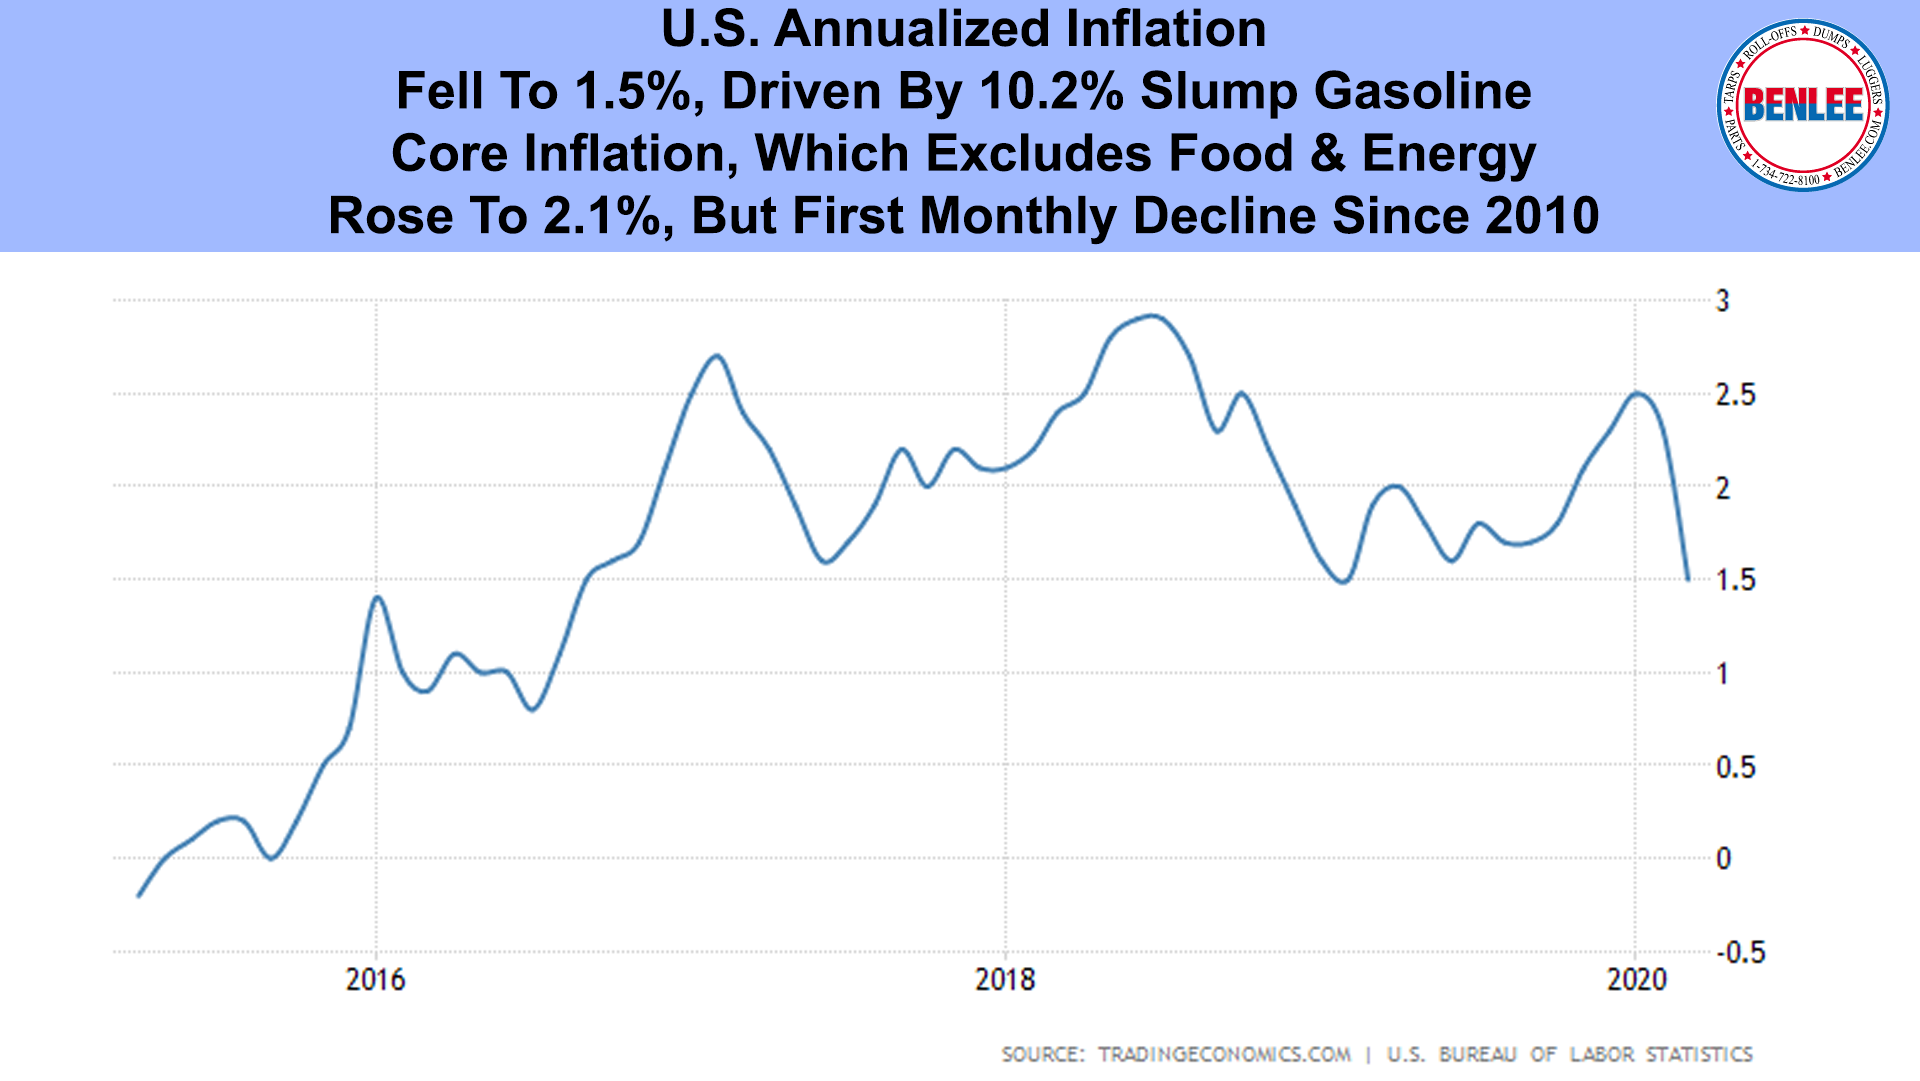 U.S. Annualized Inflation